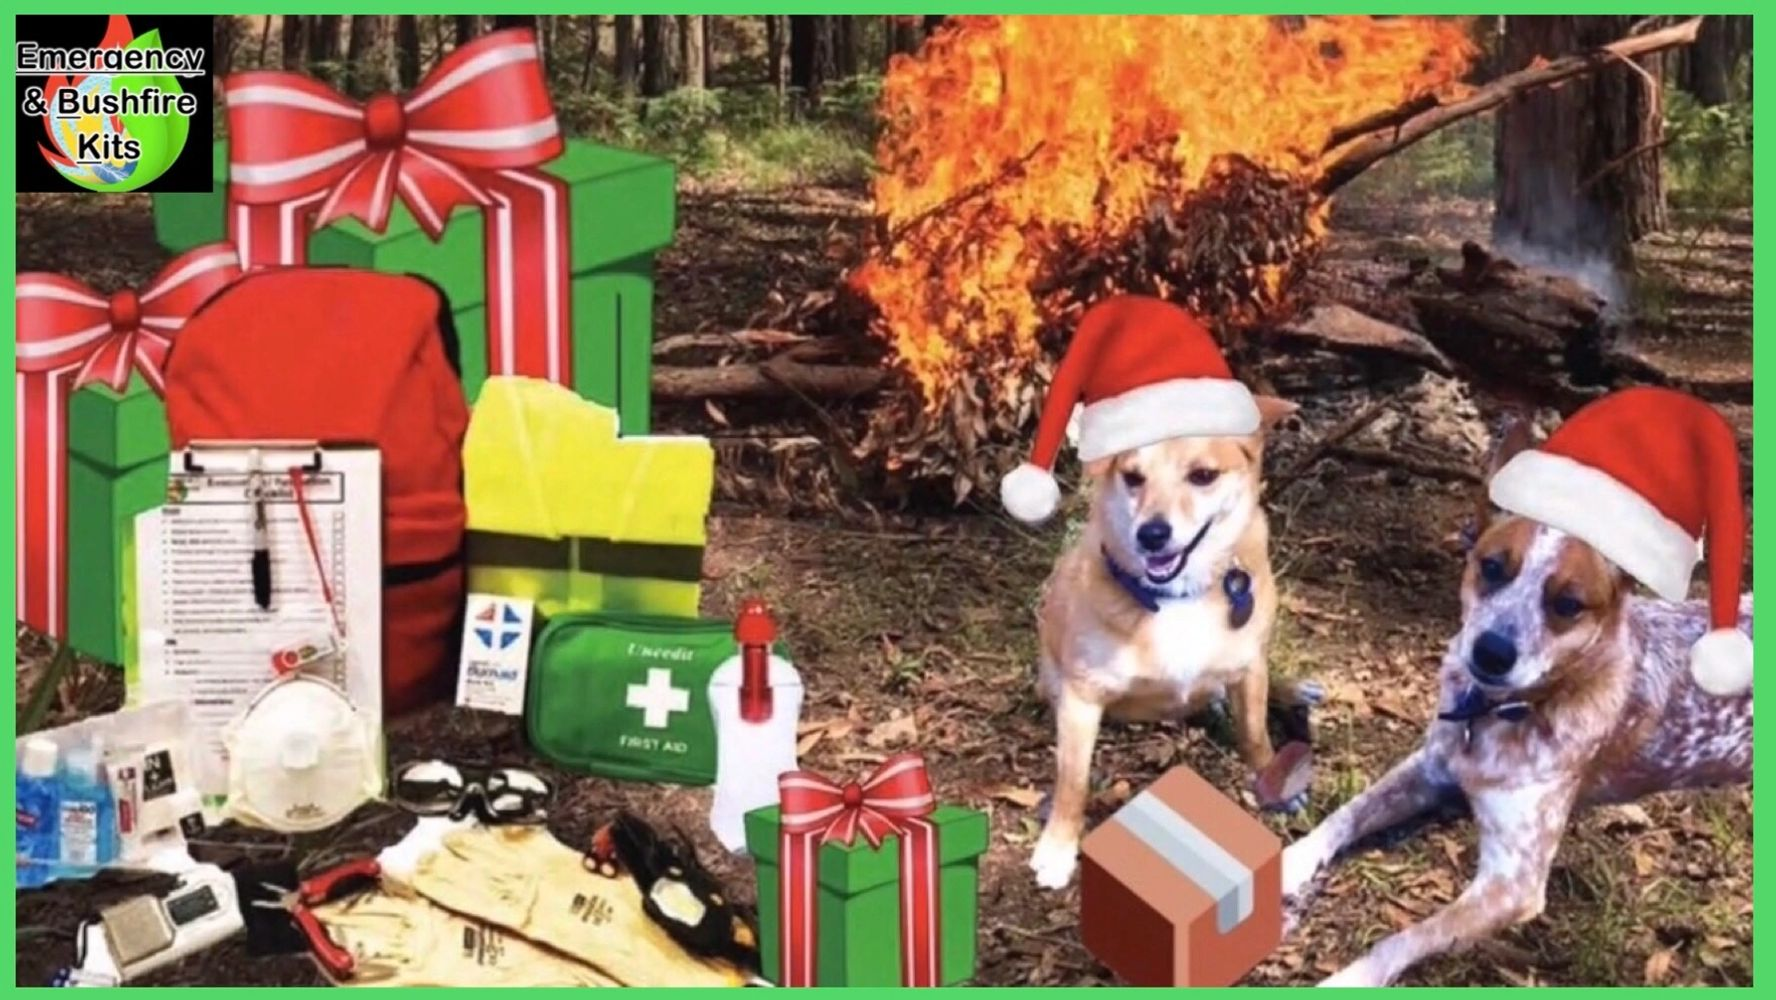 Emergency Kits Survival kit Safety Gear fire bushfire dogs Christmas online Australia storm prepared